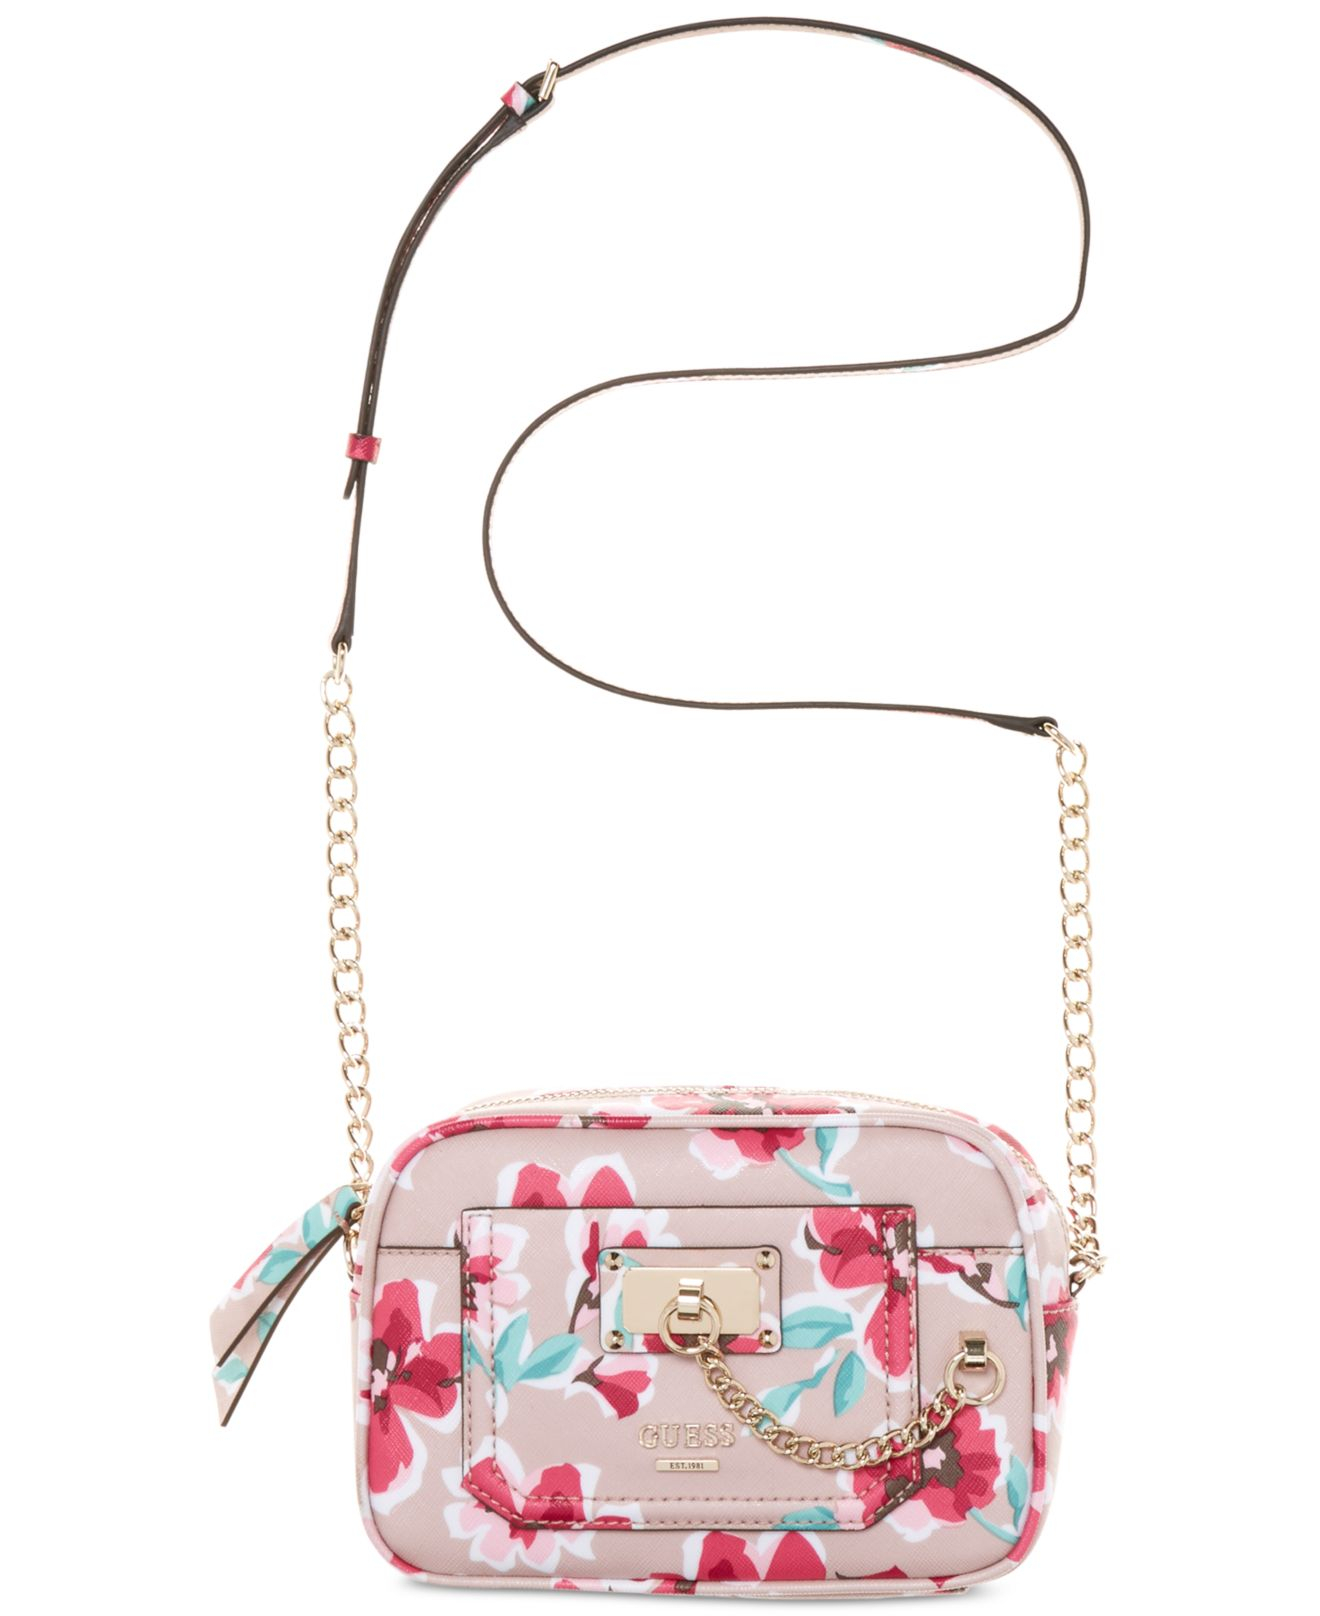 Lyst - Guess Forget Me Not Crossbody Camera Bag In Pink